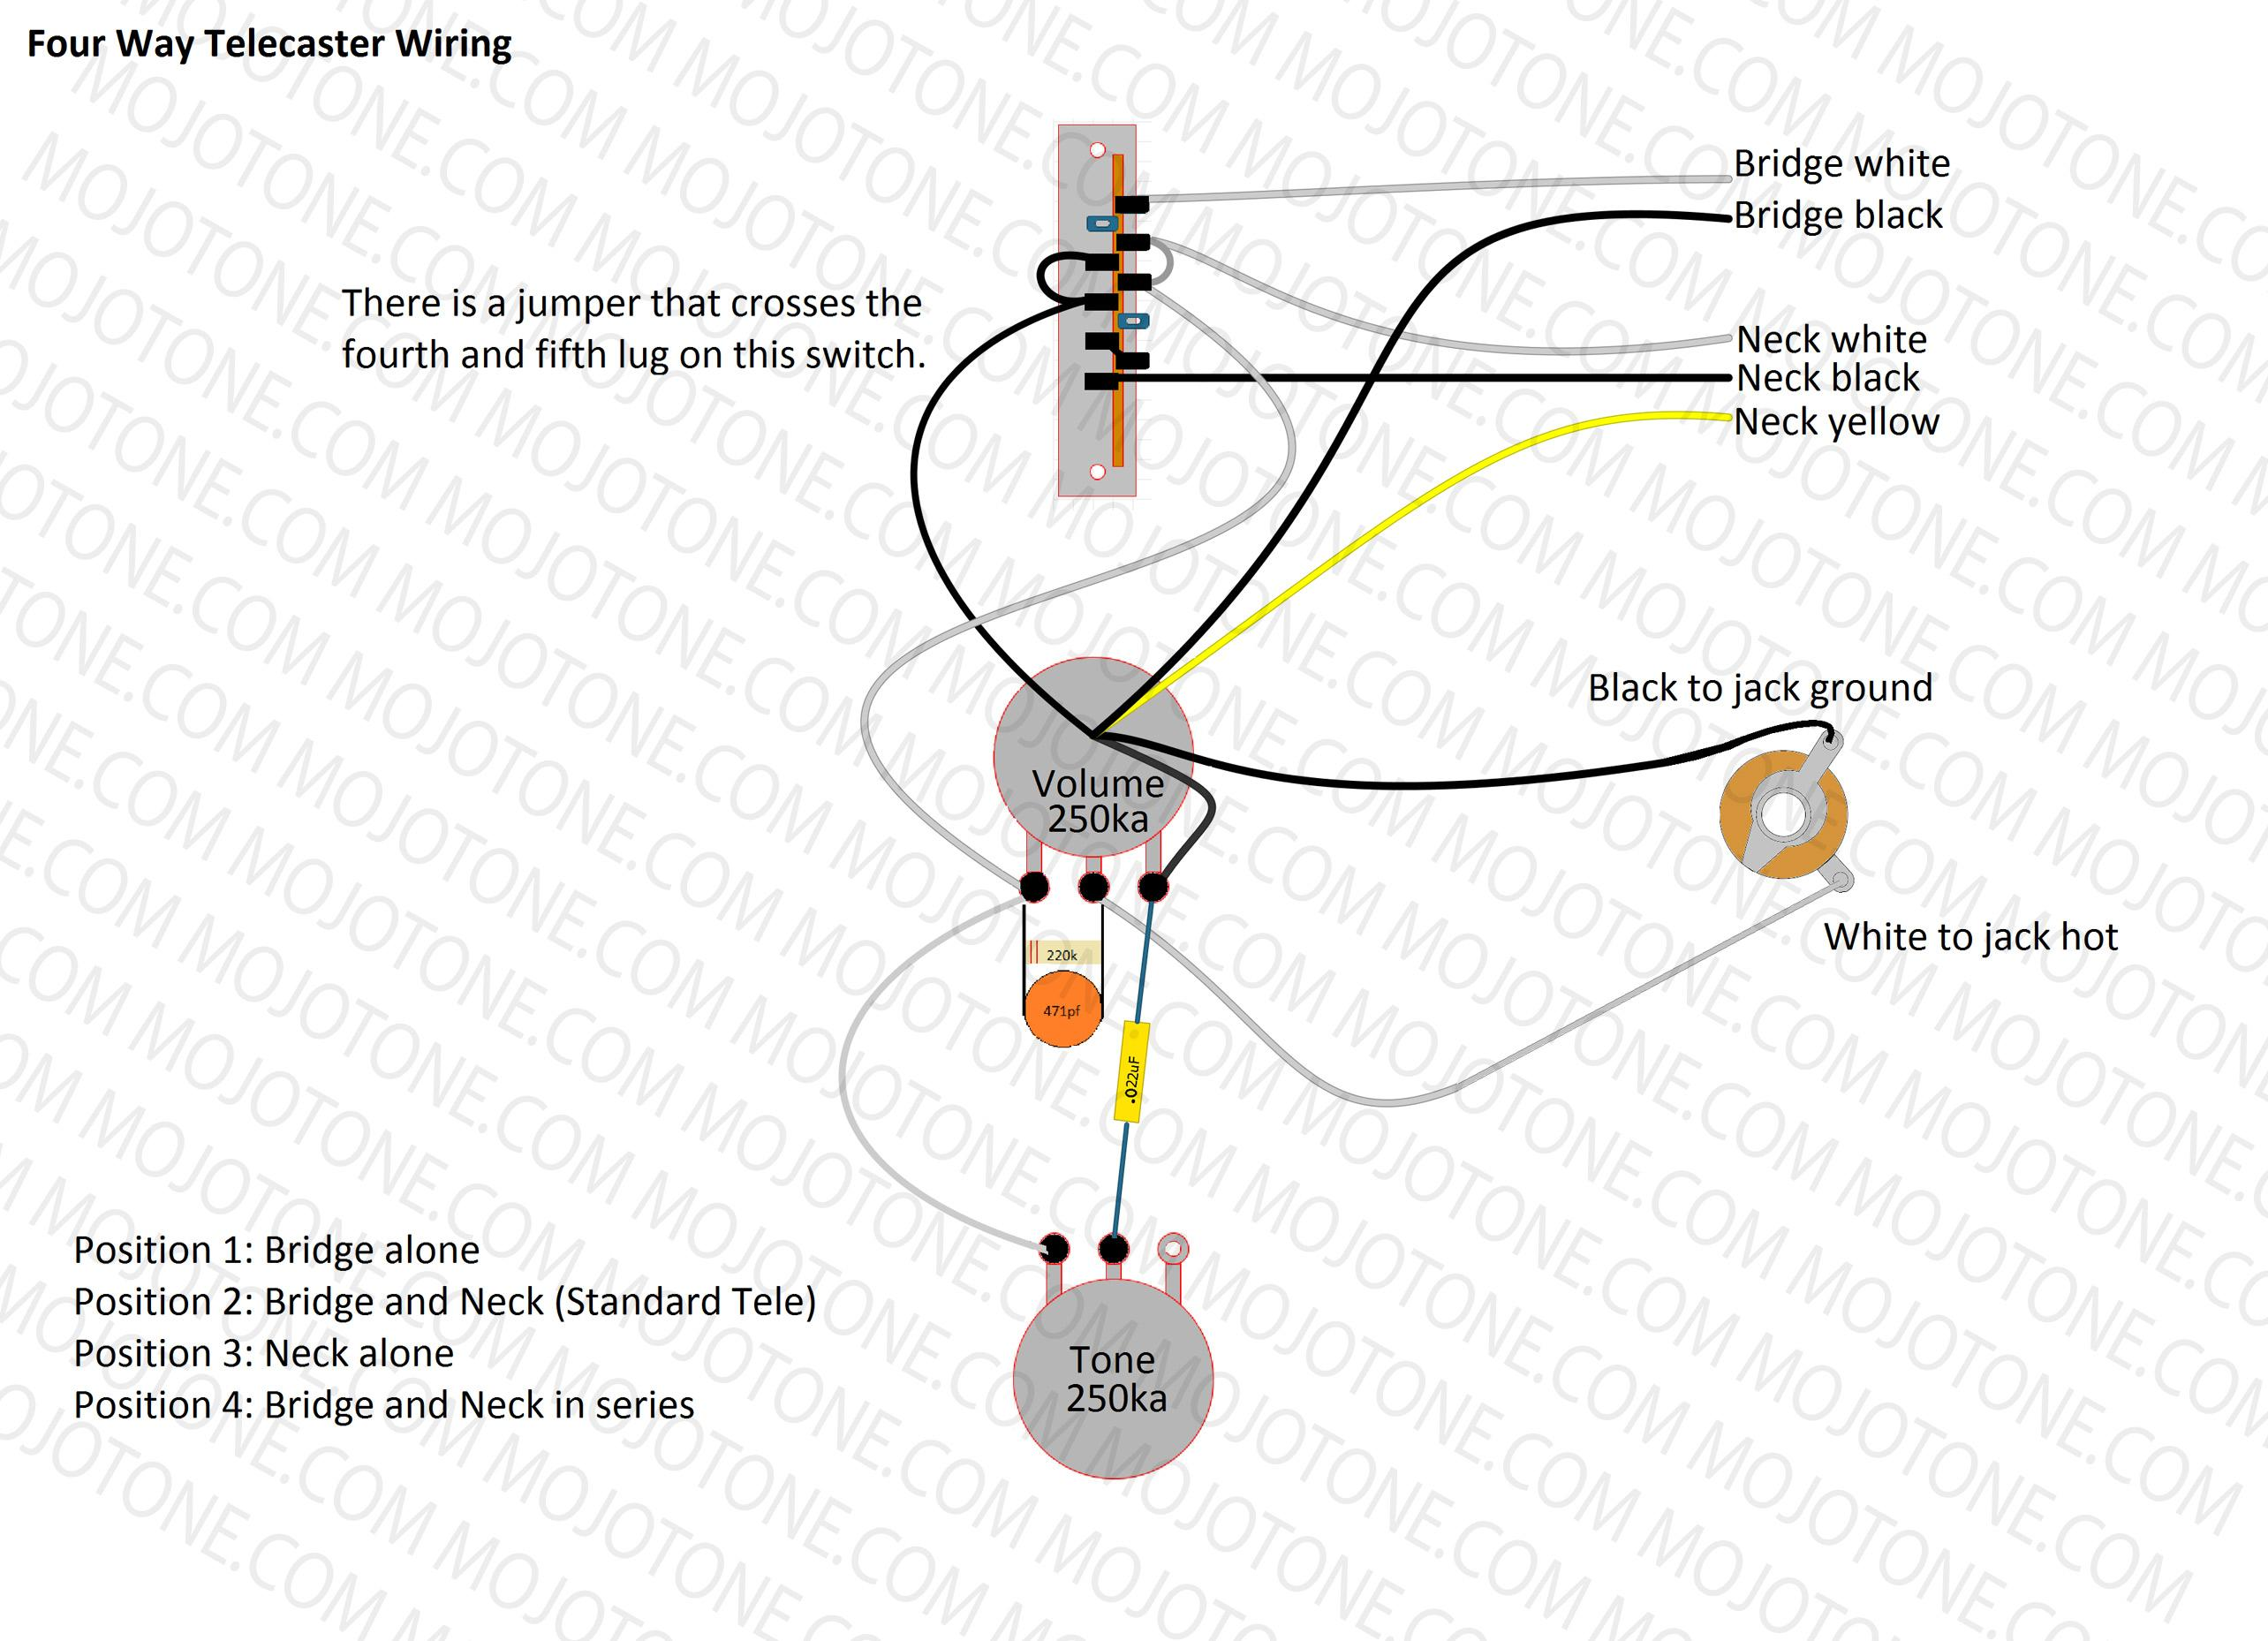 Telecaster Four Way Wiring Diagram on fender bass wiring diagram, fender stratocaster wiring, fender tele bass, fender tele deluxe, fender tele jr, fender esquire wiring-diagram, fender n3 wiring diagram, fender stratocaster parts diagram, fender mustang wiring diagram, fender standard wiring diagrams, fender tbx wiring diagram, fender lace sensor wiring diagram, fender squier wiring diagrams, fender broadcaster wiring diagram, fender tele specs, fender tele body, fender 5-way switch diagram, fender humbucker wiring diagrams, fender pickup wiring, fender la cabronita wiring-diagram,